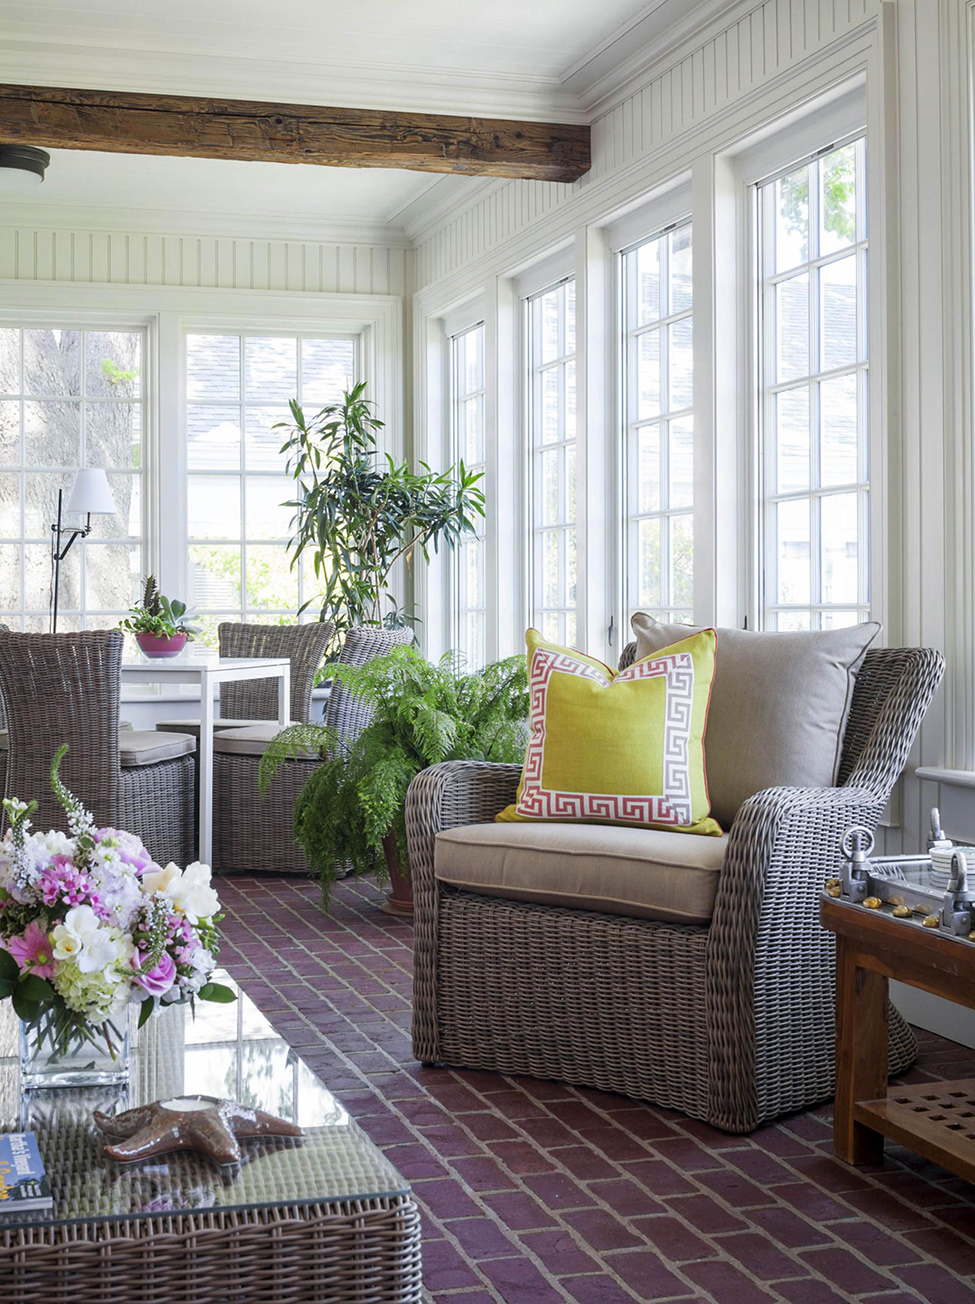 House Tour-A Classic Beauty on Pituresque Cape Cod 11.jpg